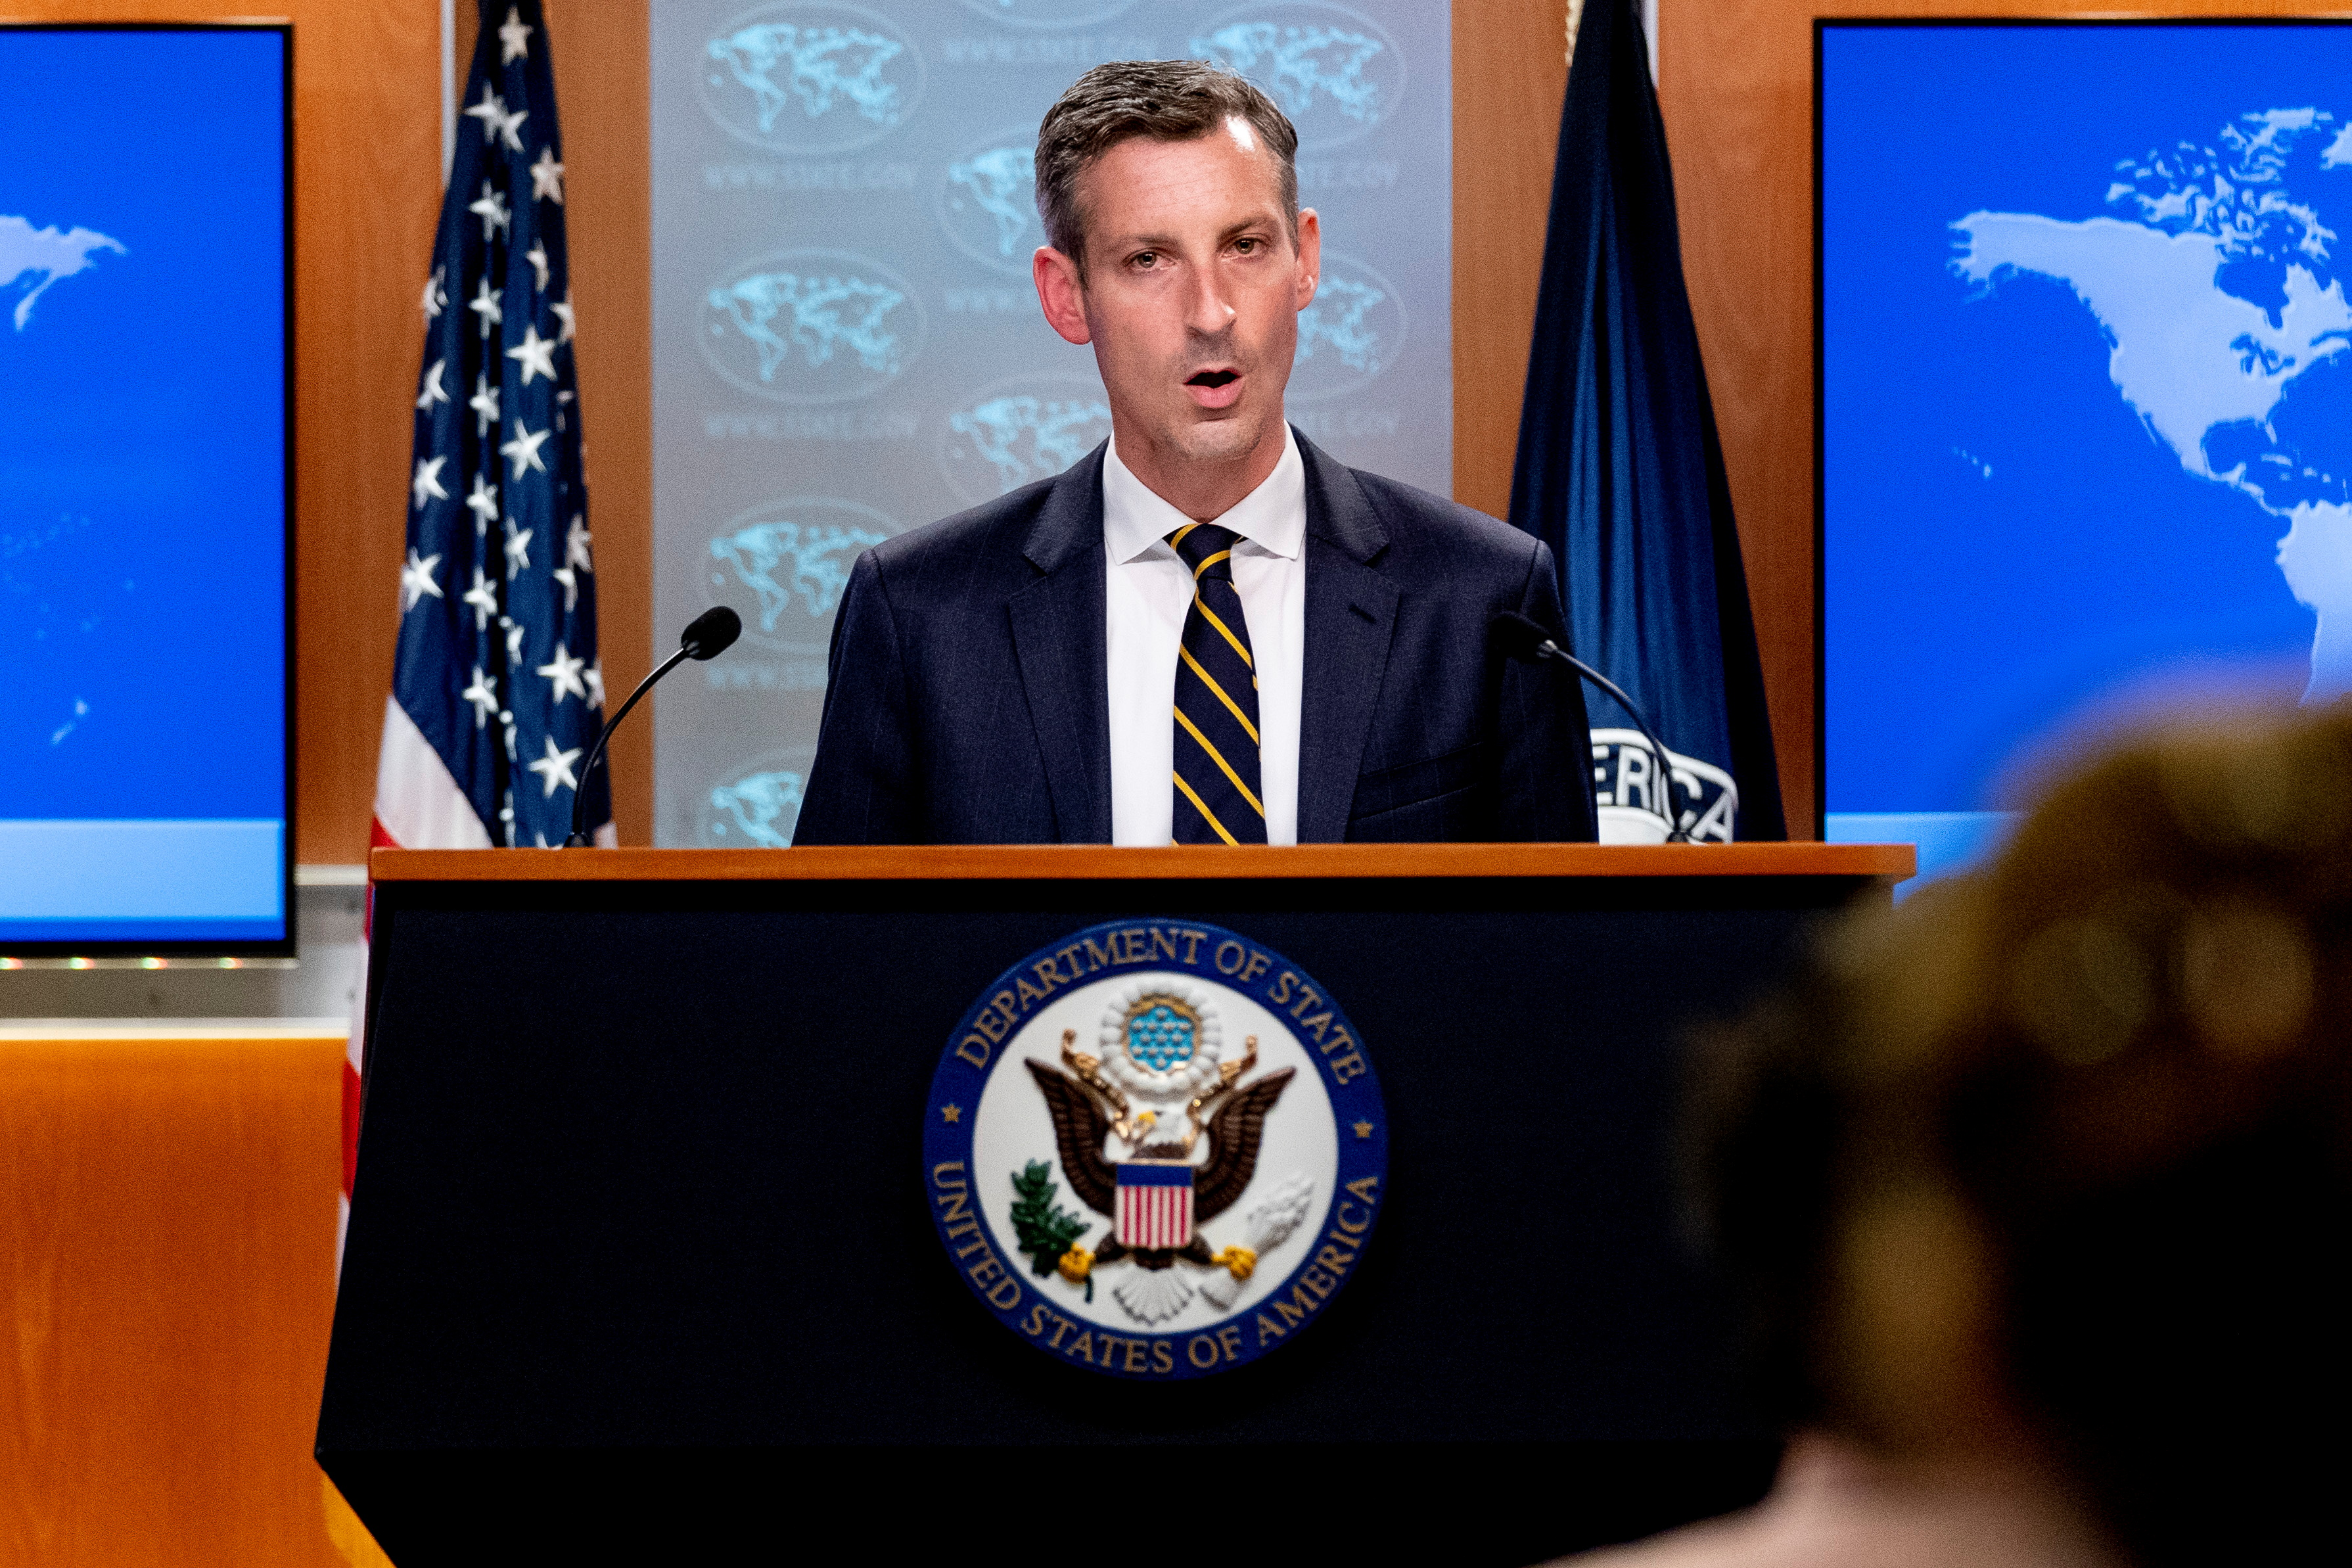 State Department spokesman Ned Price speaks on the situation in Afghanistan at the State Department in Washington, DC, U.S. August 18, 2021. Andrew Harnik/Pool via REUTERS